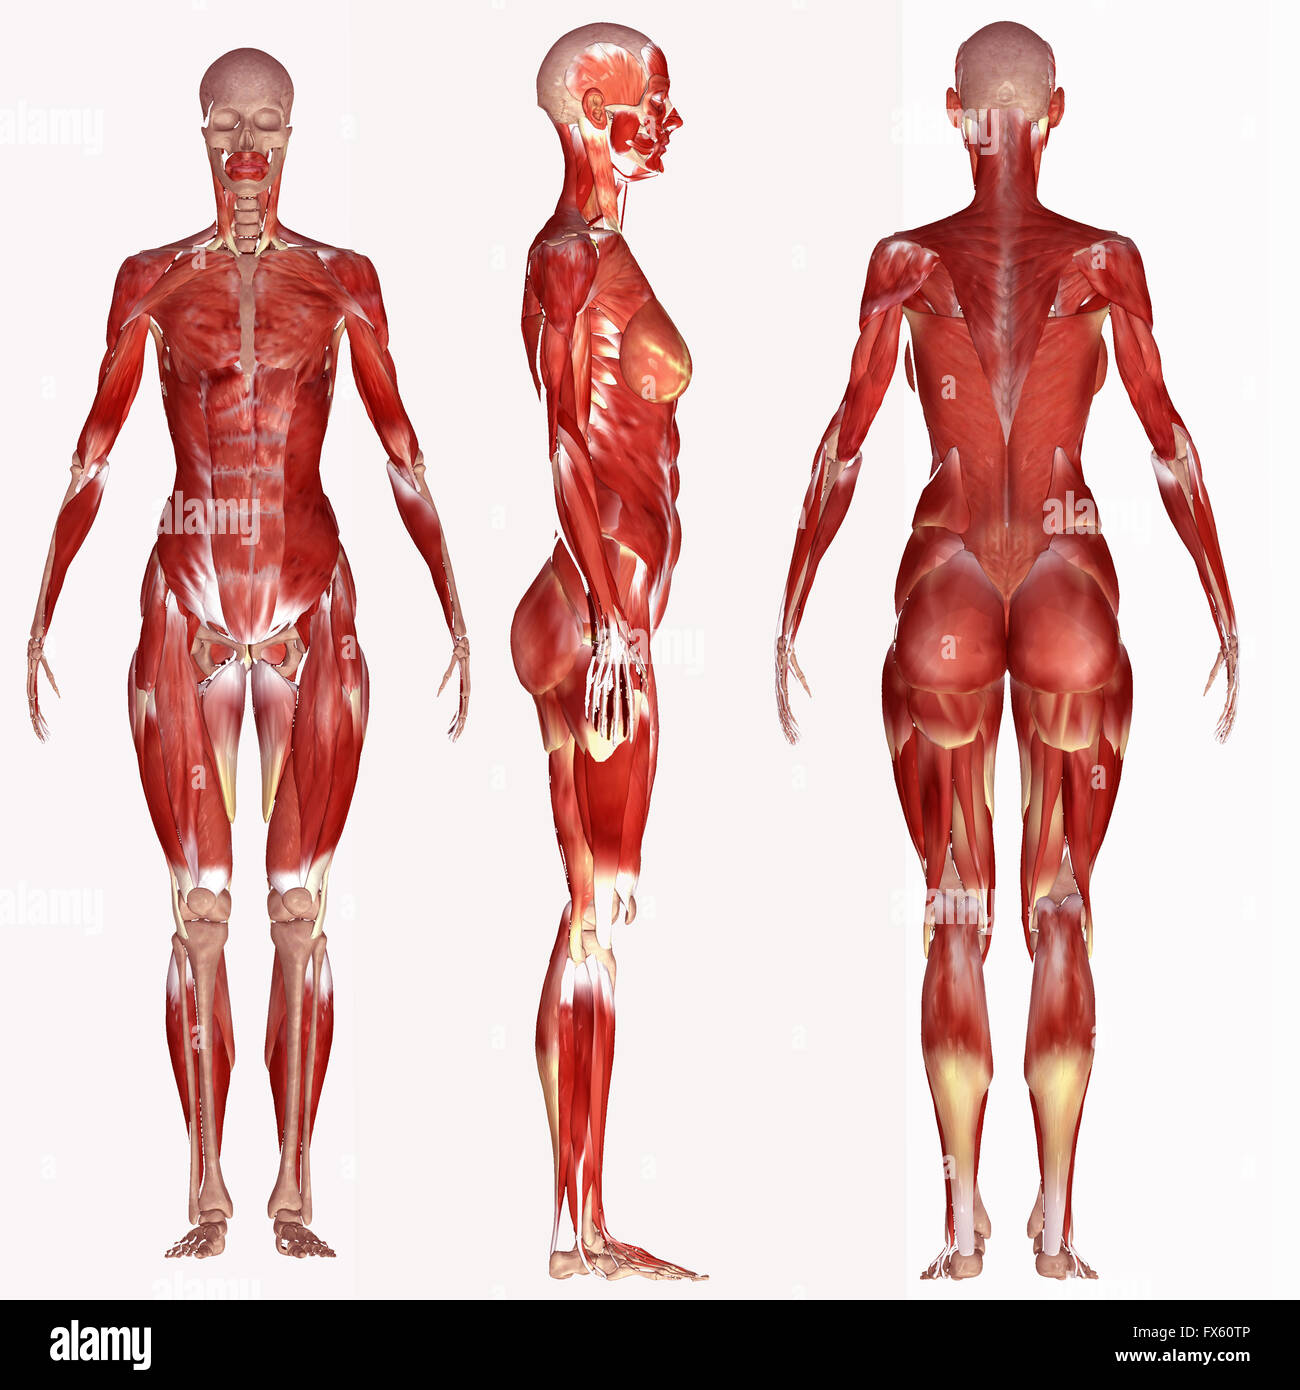 Body Human Anatomy Muscle Medical Man Medicine Illustration